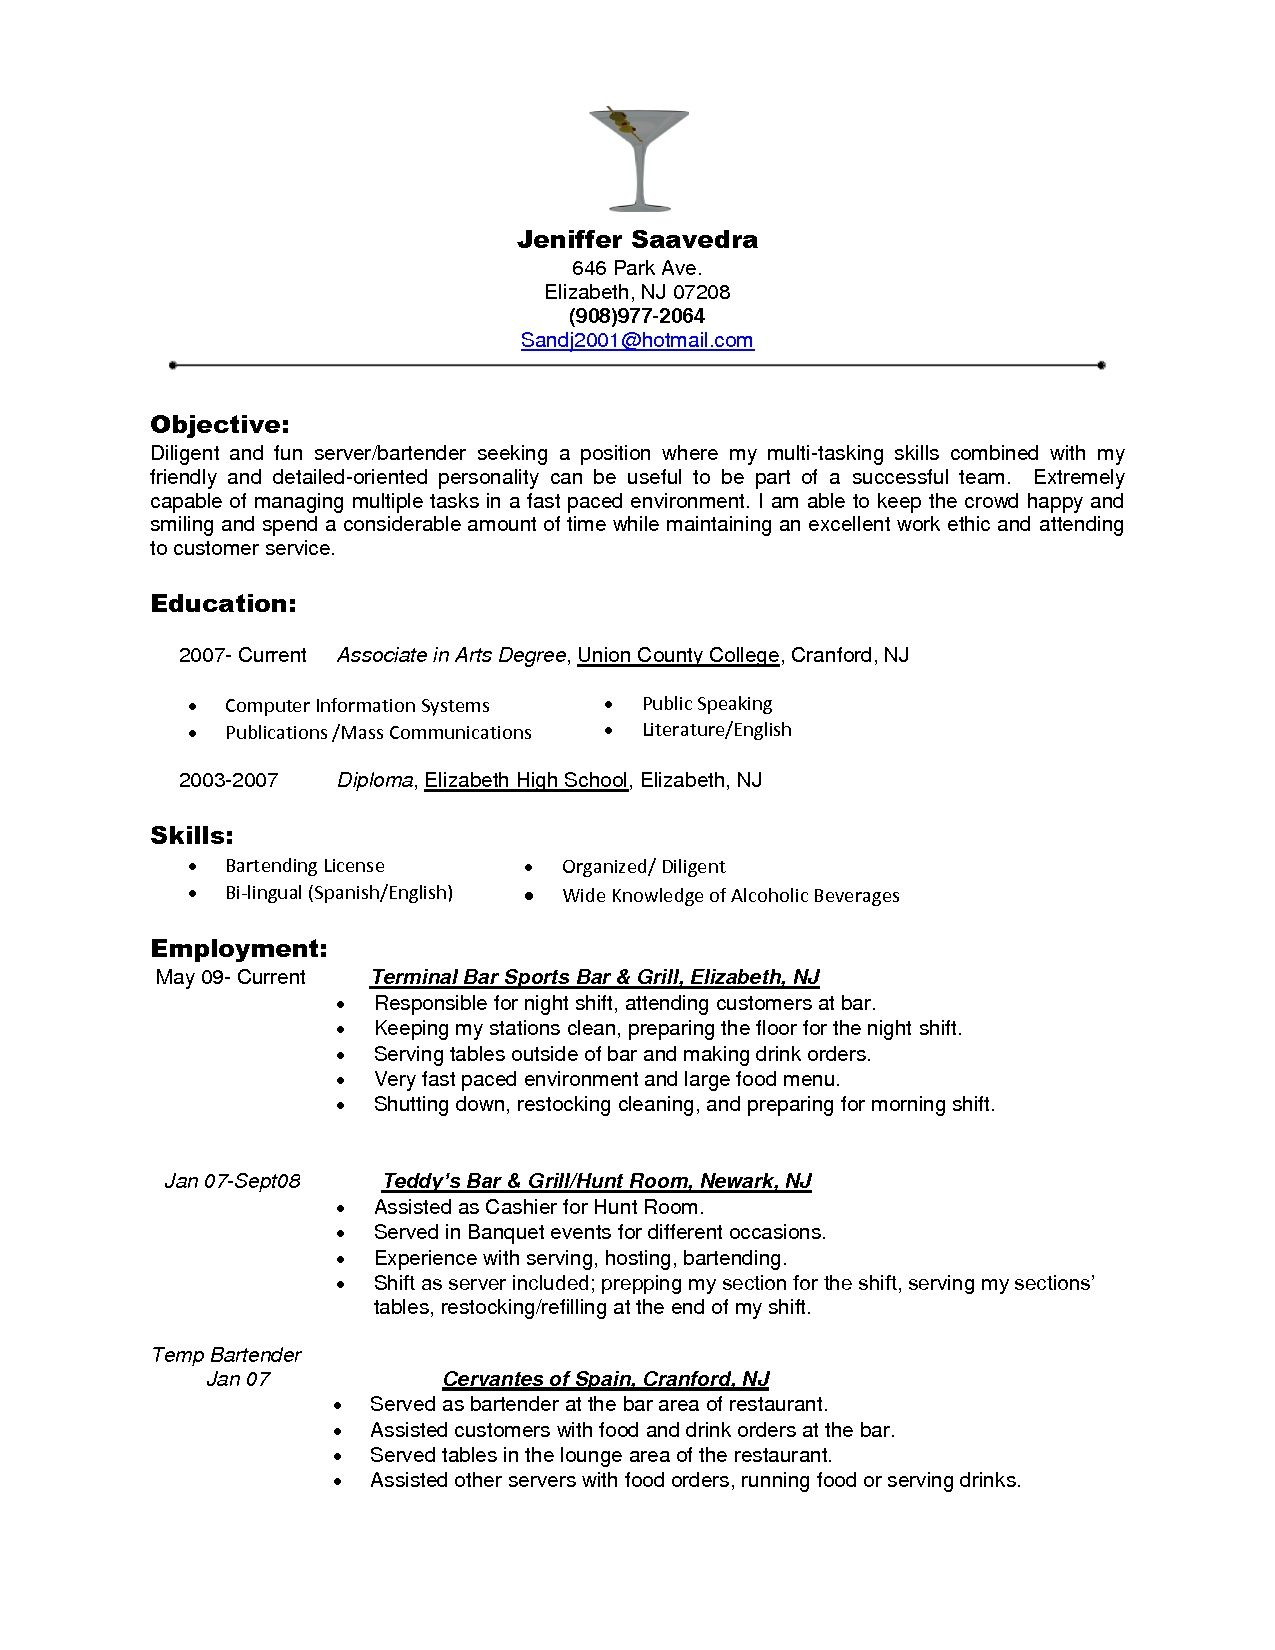 resume Possible Objectives For Resumes pin by rachel franco on resume writing pinterest skills writing